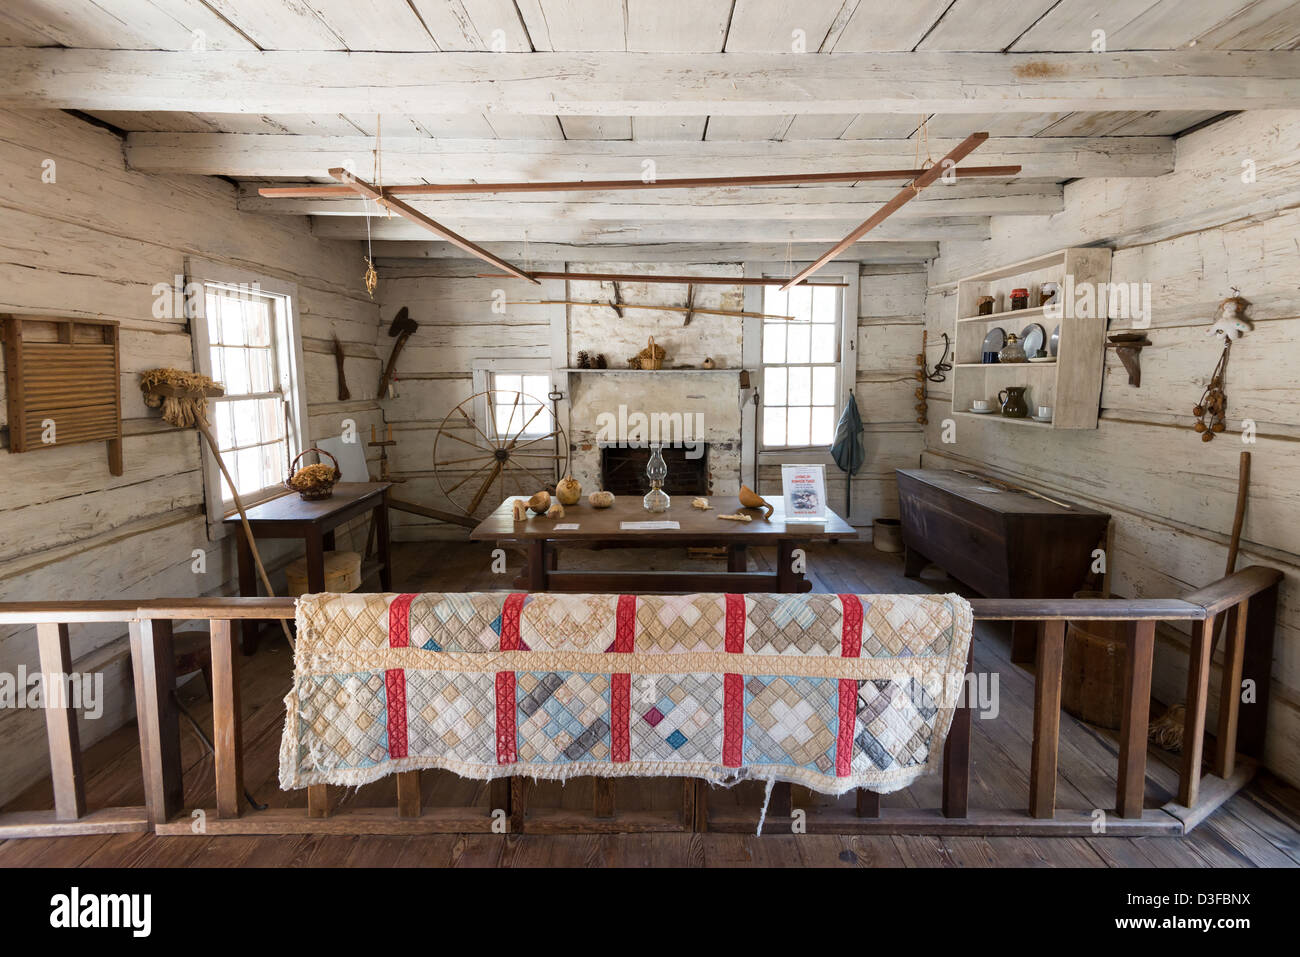 Hand hewn stock photos hand hewn stock images alamy for Hewn log cabin kits